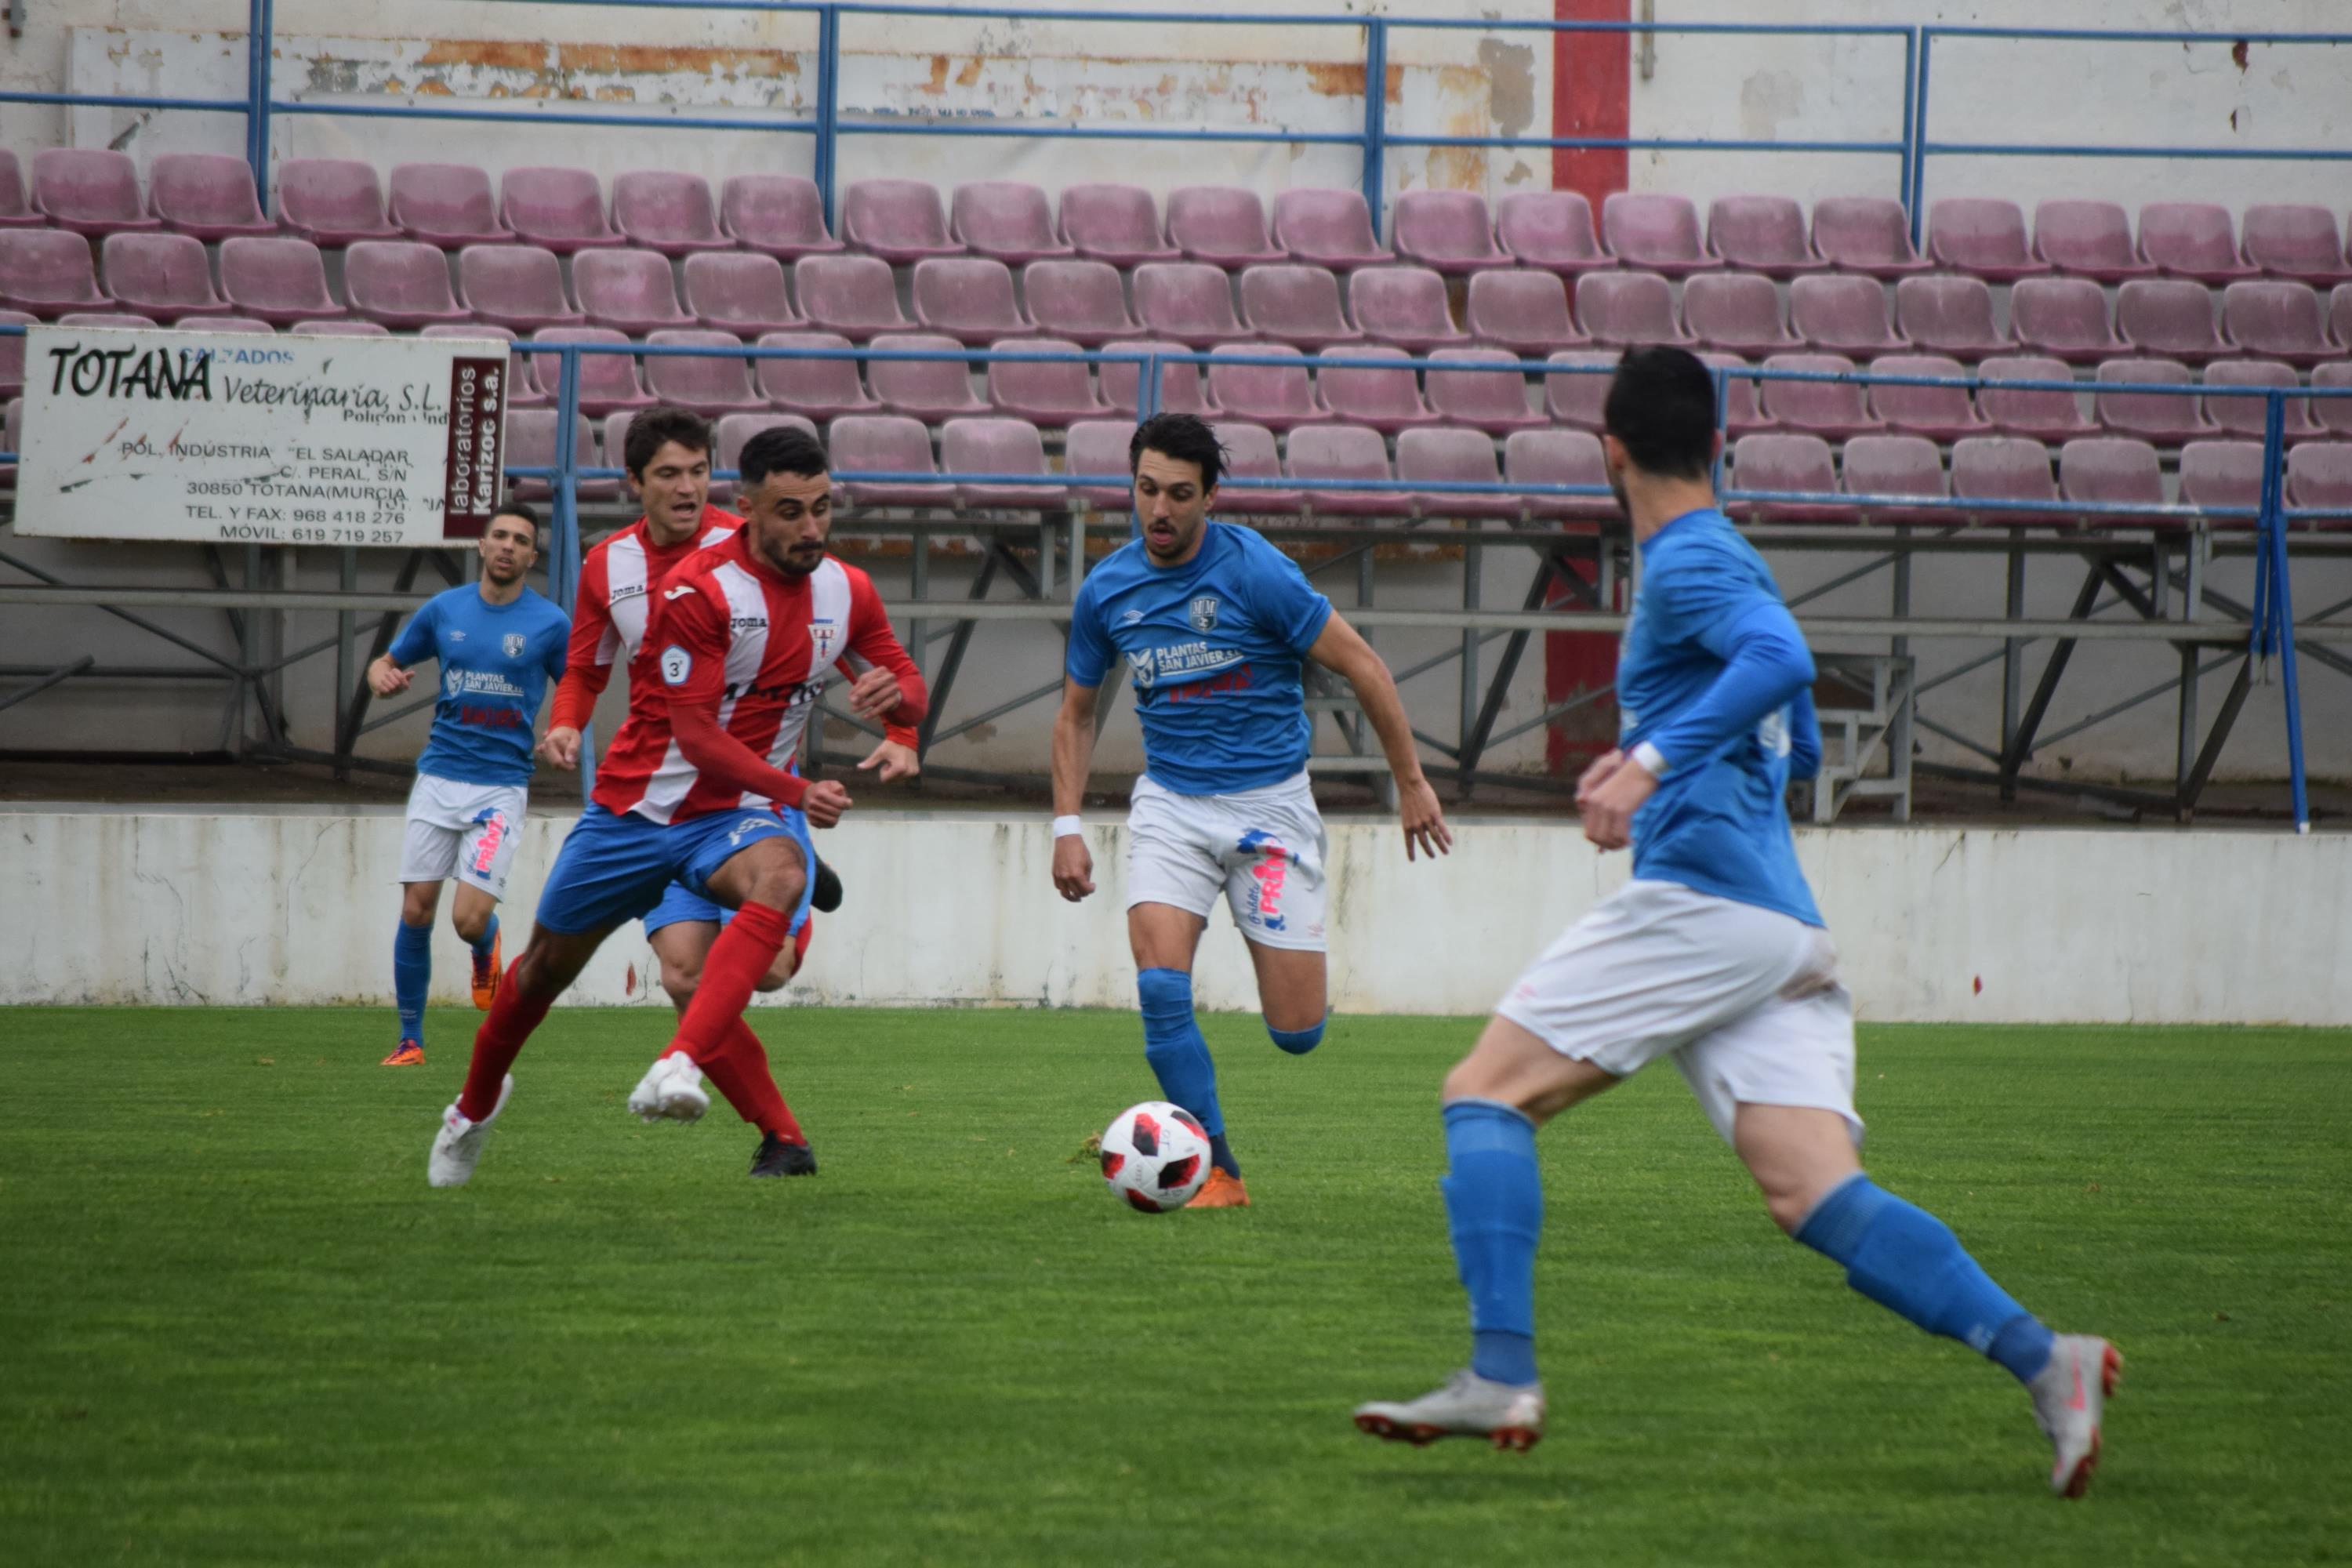 TOTANA 4-1 MAR MENOR FC.